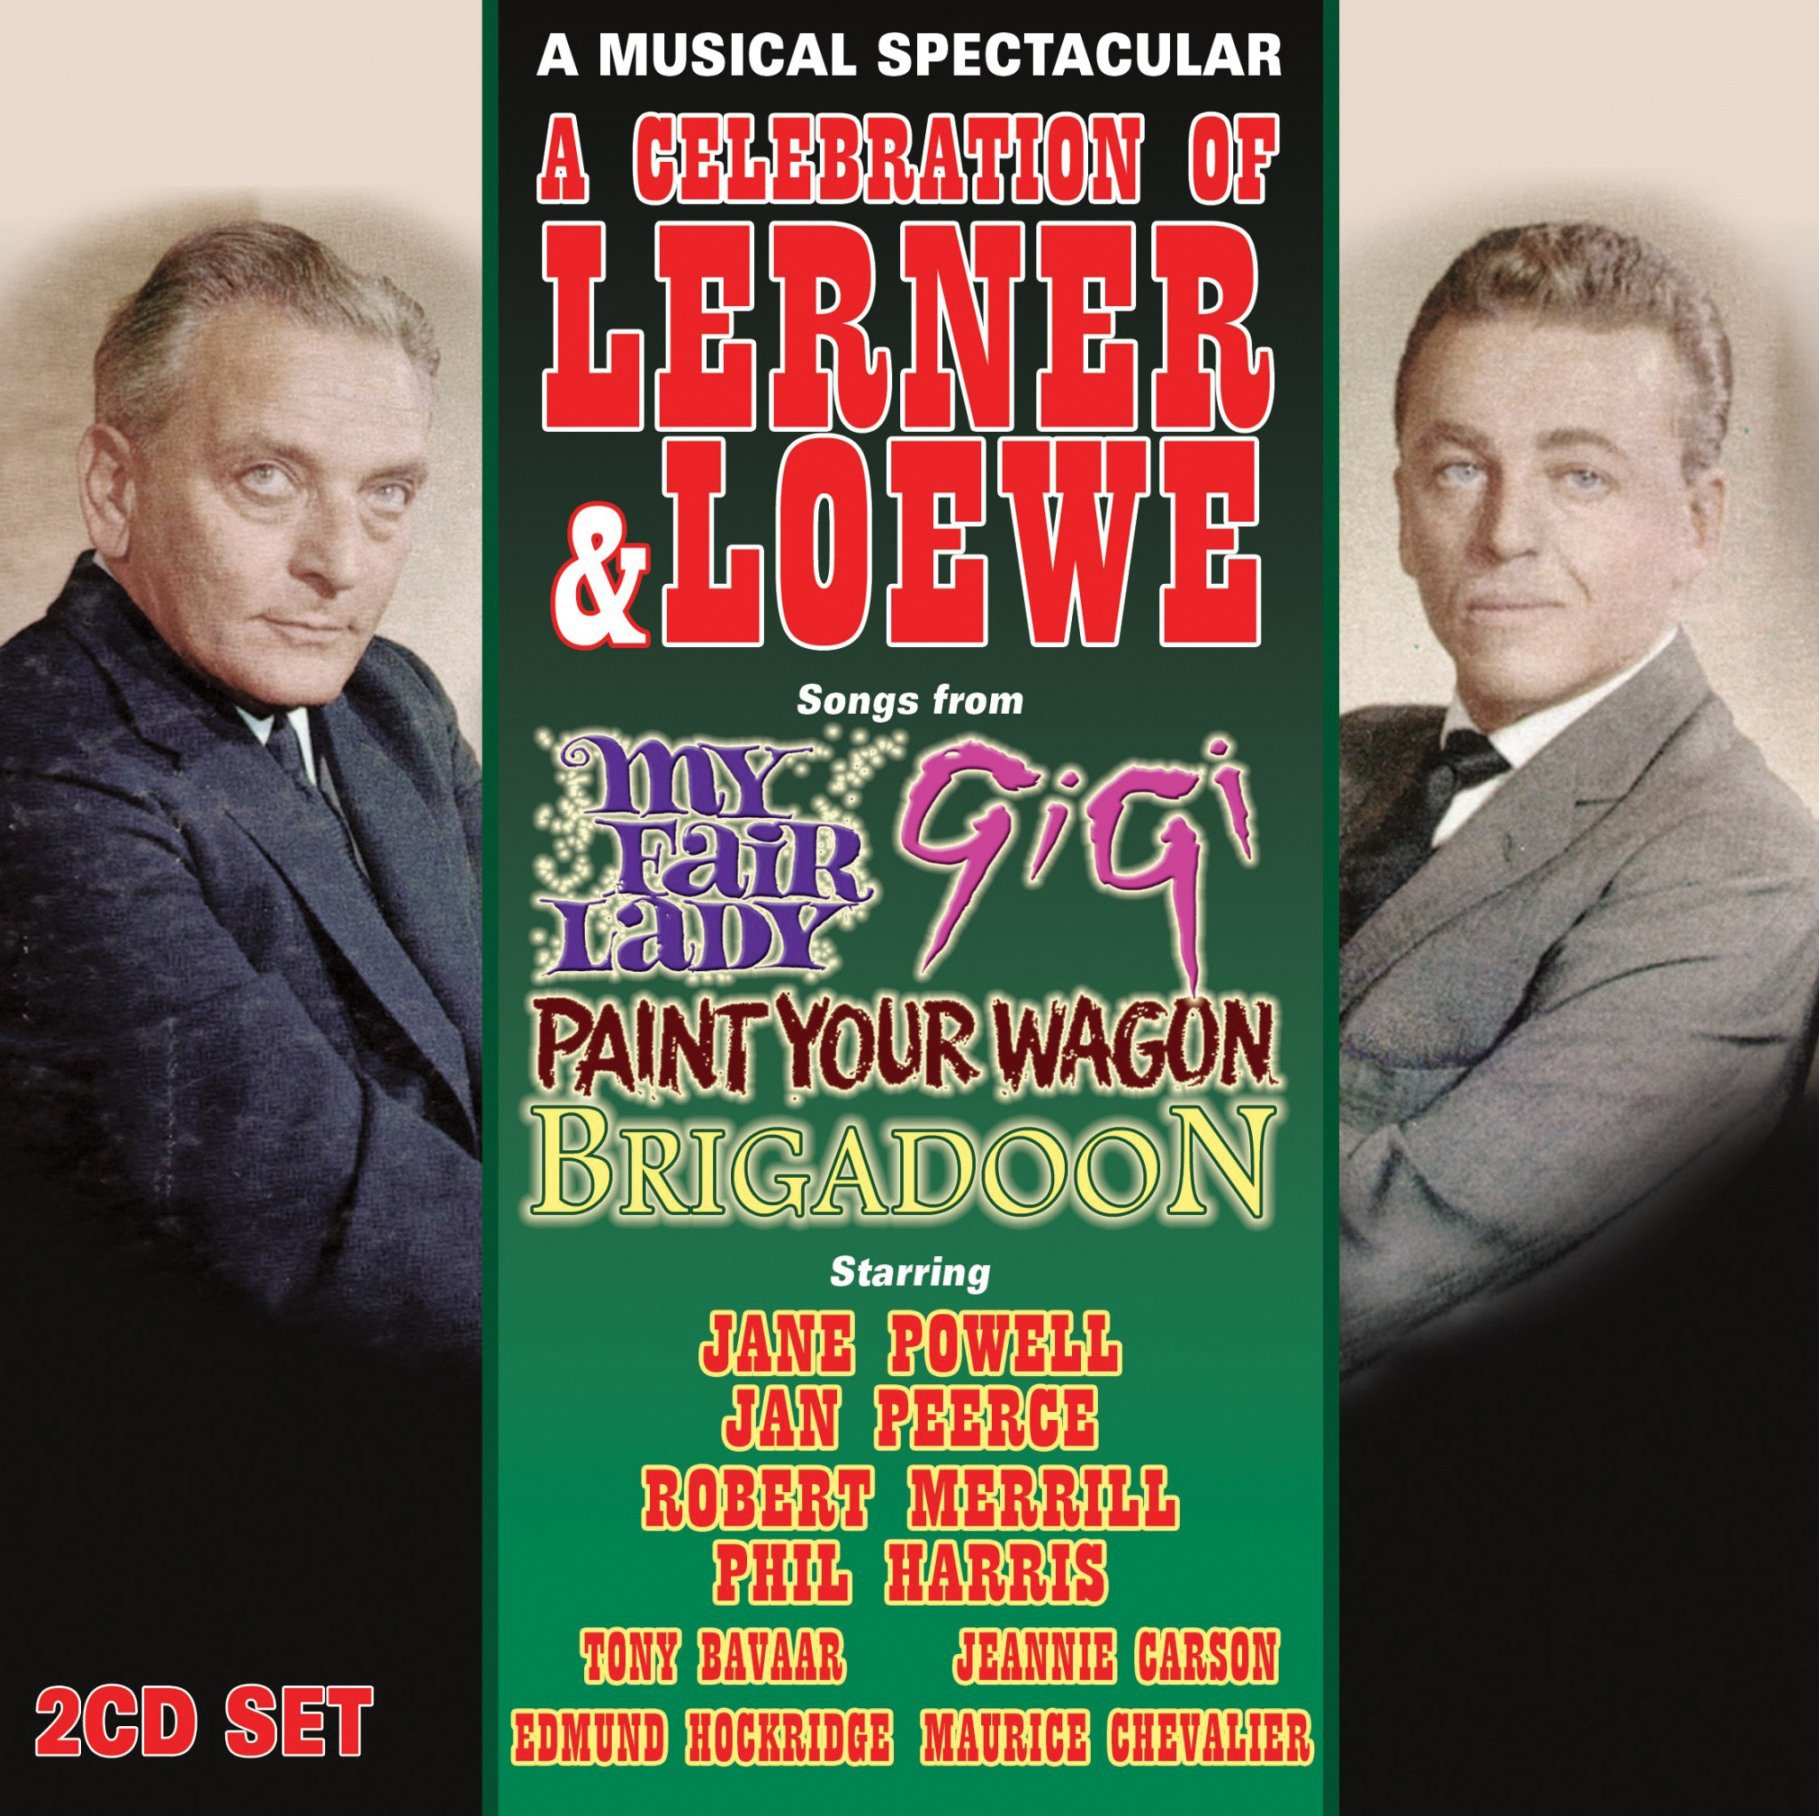 A Celebration Of Lerner & Loewe by Sepia Records